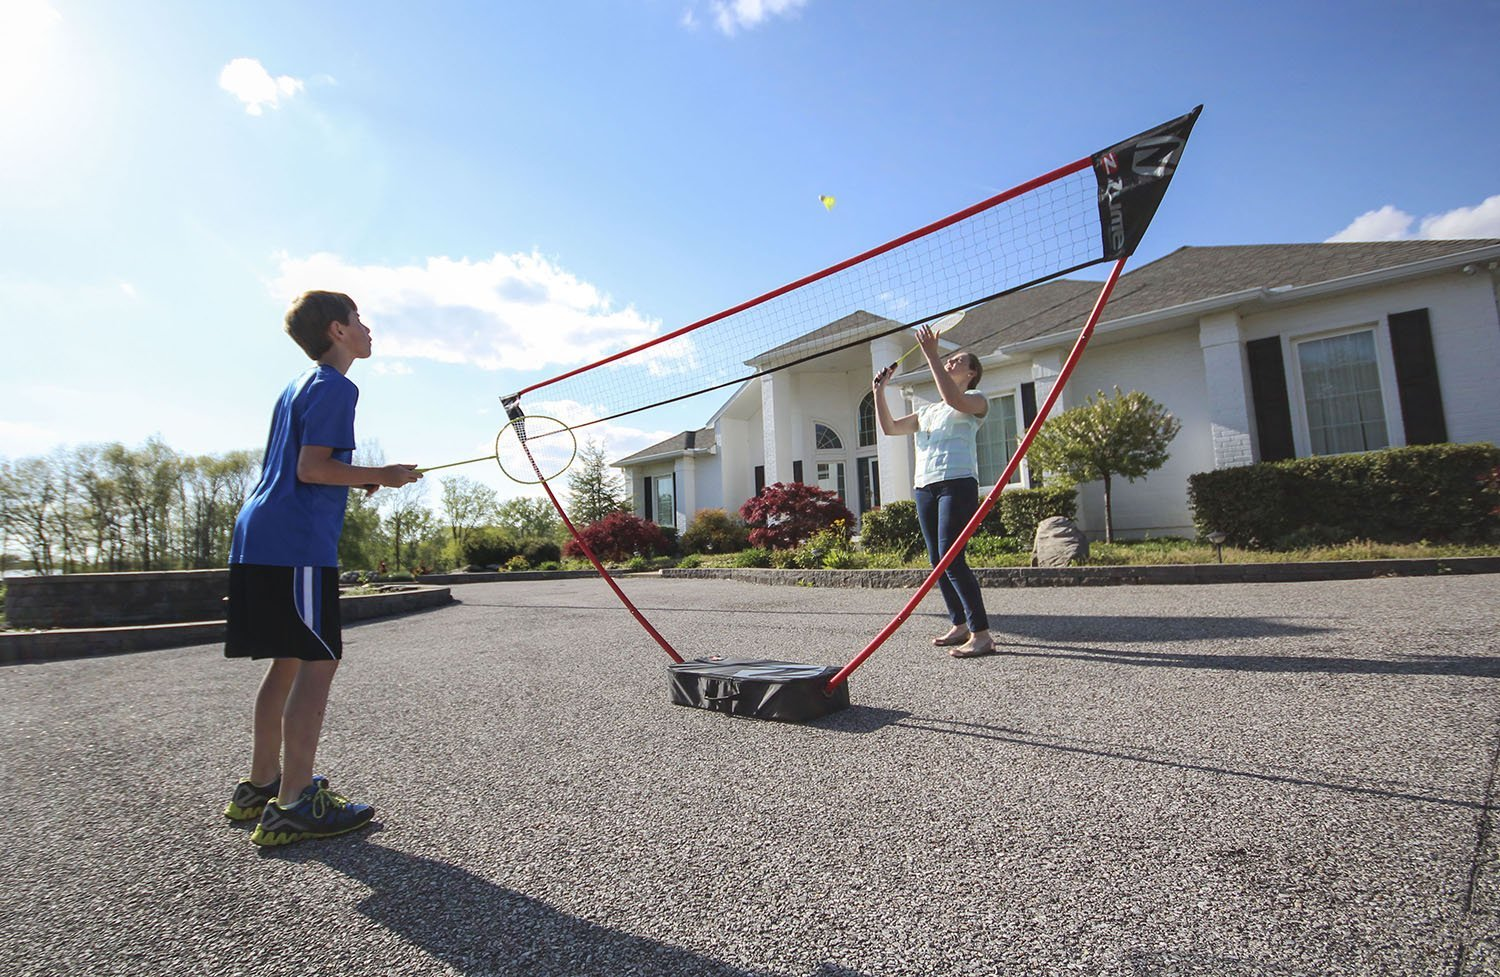 Zume Games Portable Badminton Set with Freestanding Base - Sets Up on Any Surface in Seconds - No Tools or Stakes Required (Renewed) by Zume (Image #7)